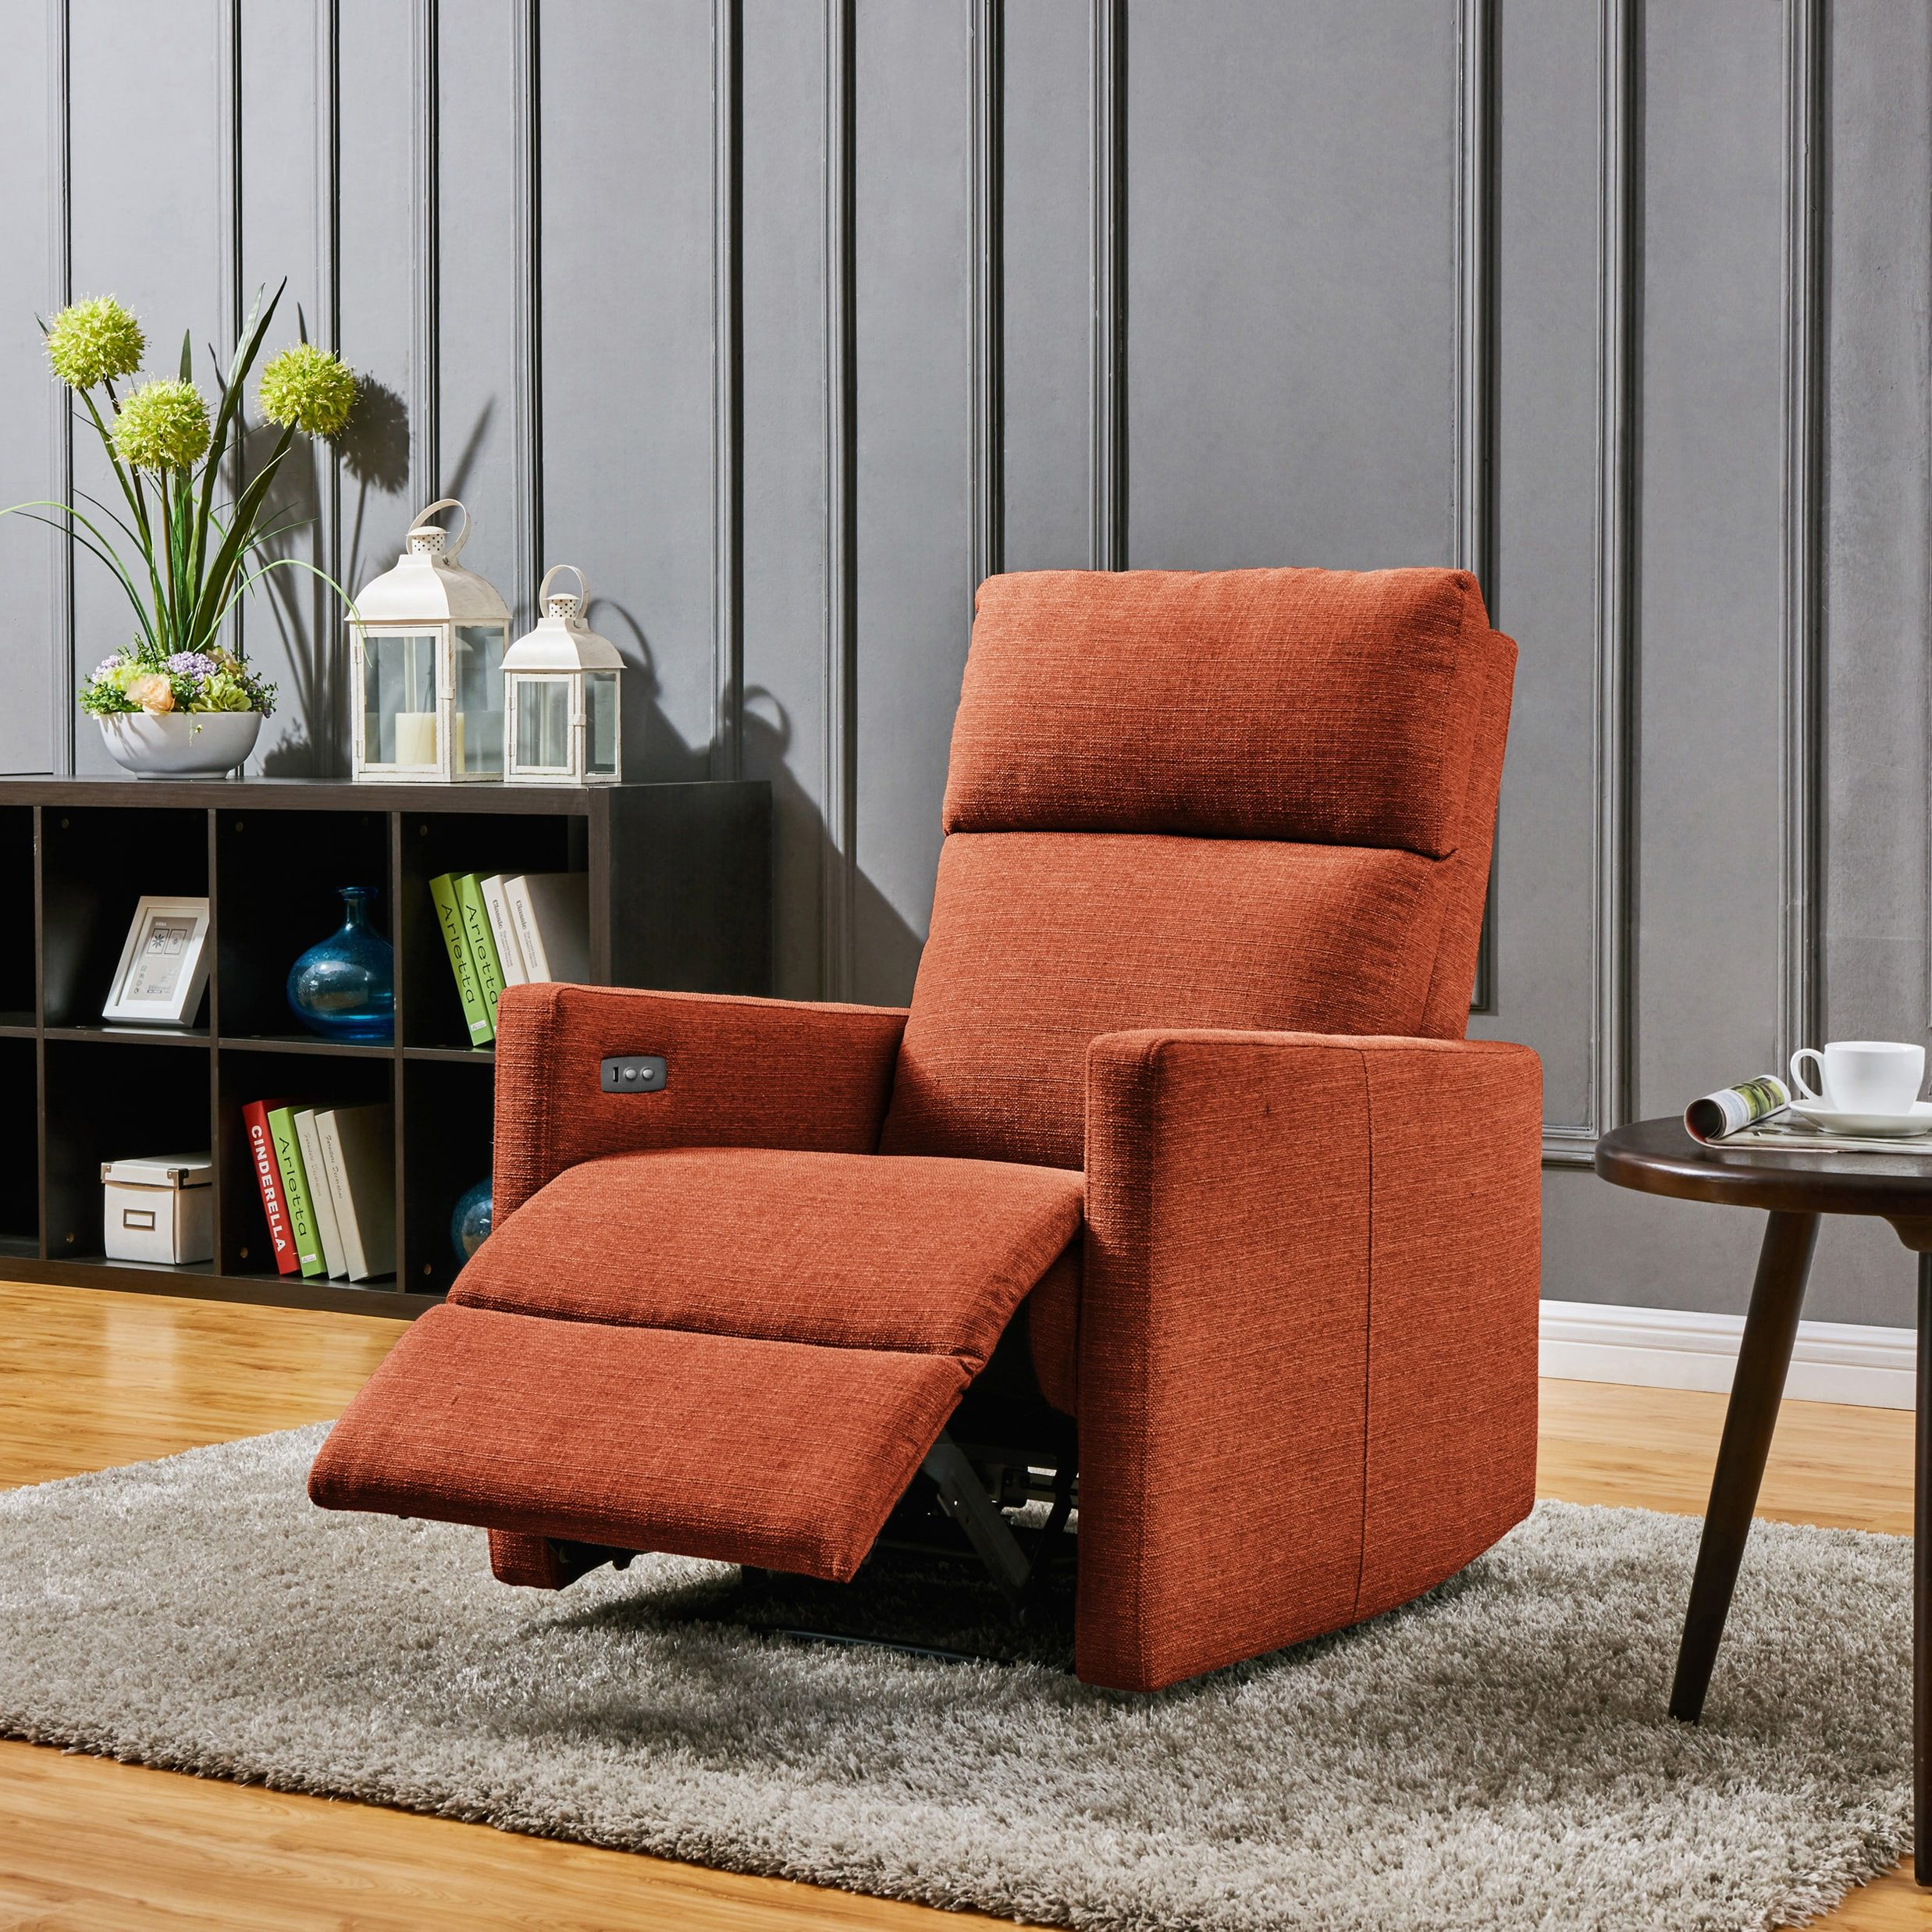 Phenomenal Prolounger Orange Power Wall Hugger Recliner Chair With Usb Pdpeps Interior Chair Design Pdpepsorg